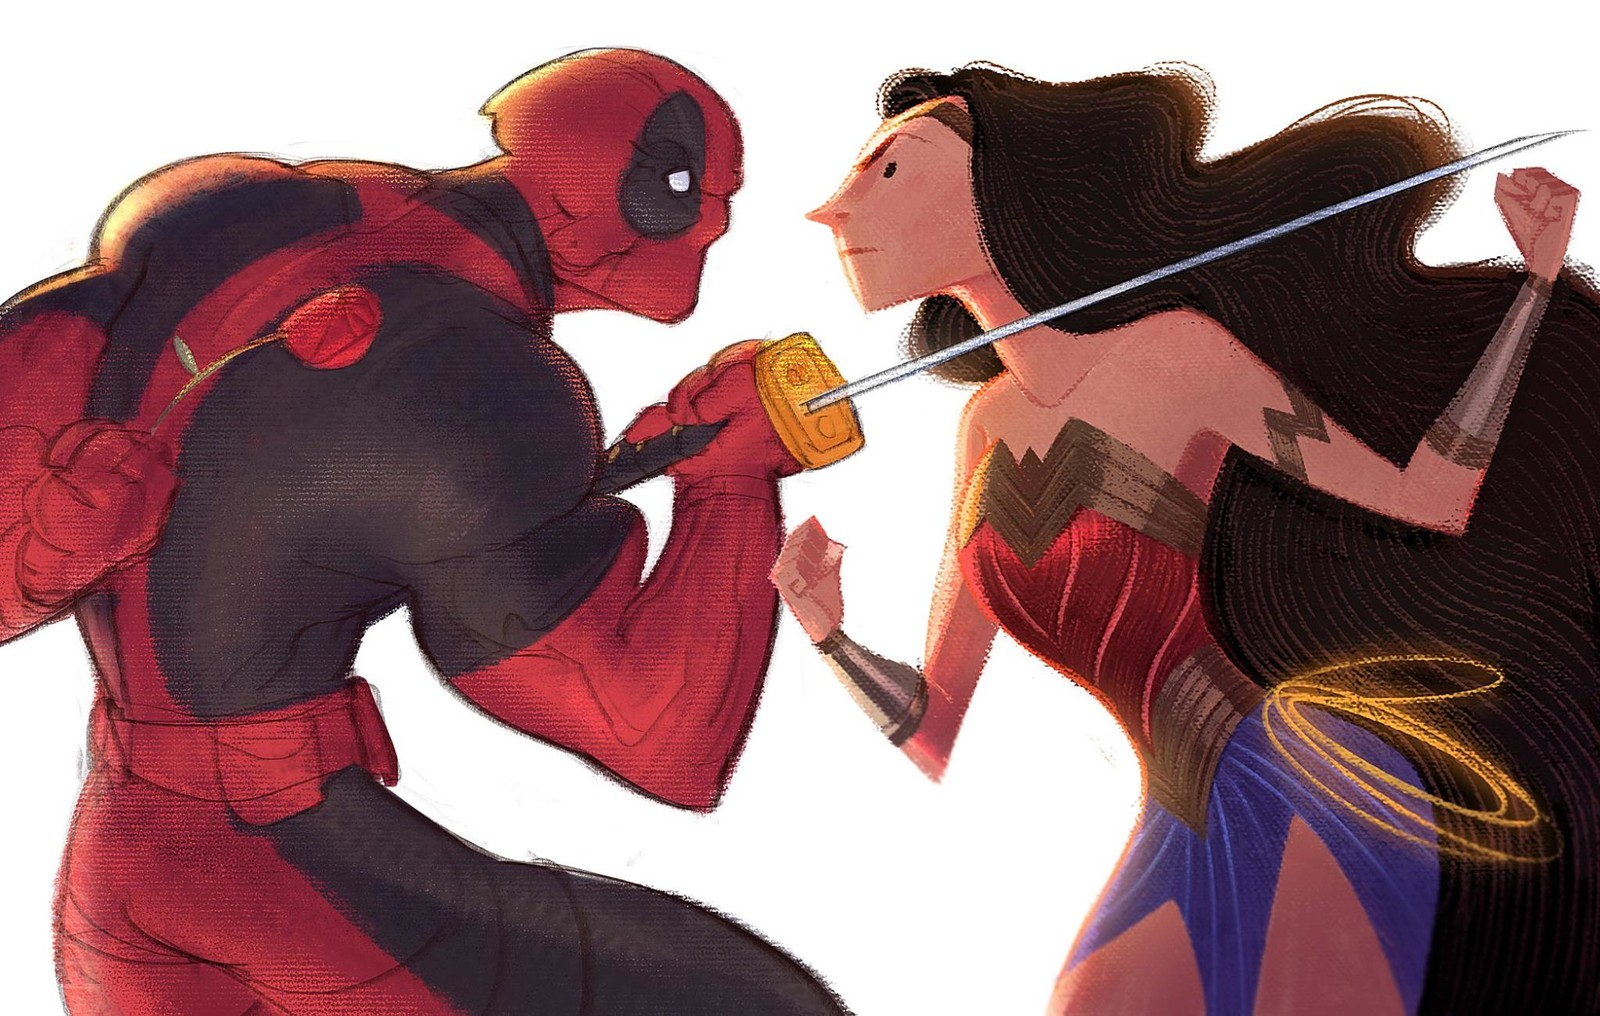 Marvel vs DC! My buddy Gabriel asked me for a collab and I though this is a nice opportunity to play with textures has he does with his amazing work, also I think Deadpool is looking for another kind of relationship